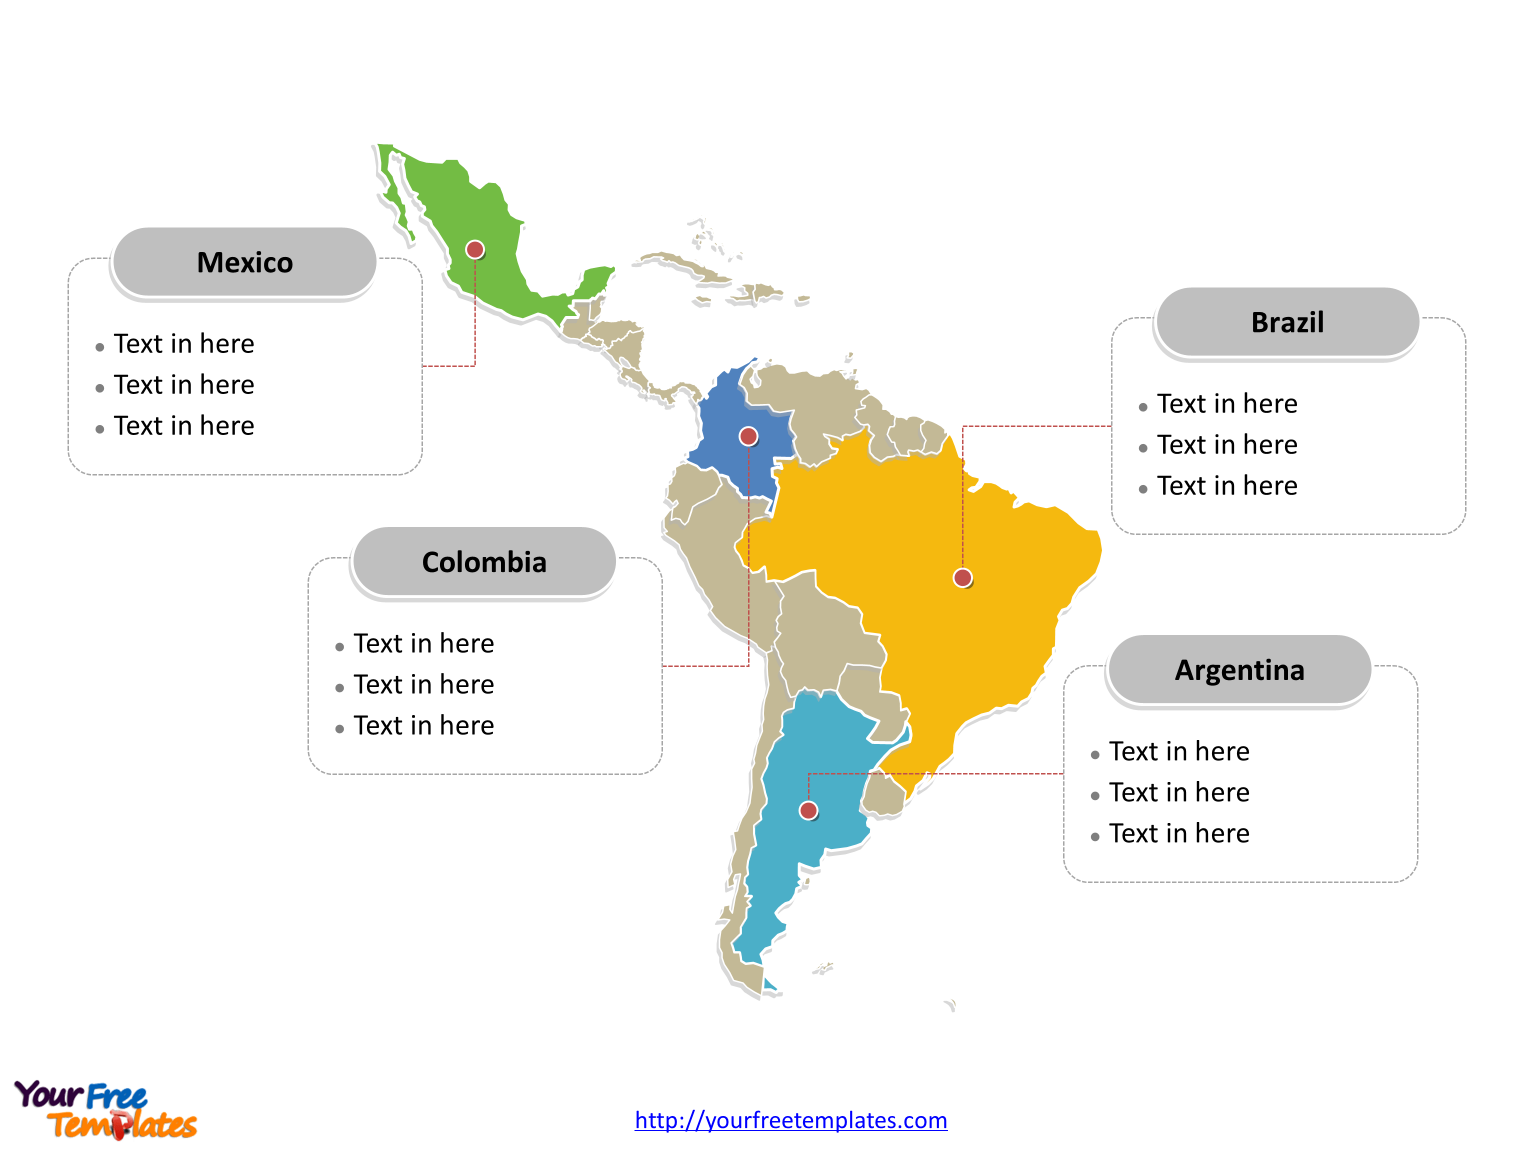 Latin america map free templates free powerpoint templates map of latin america with political division and major countries labeled on the blank latin america gumiabroncs Gallery